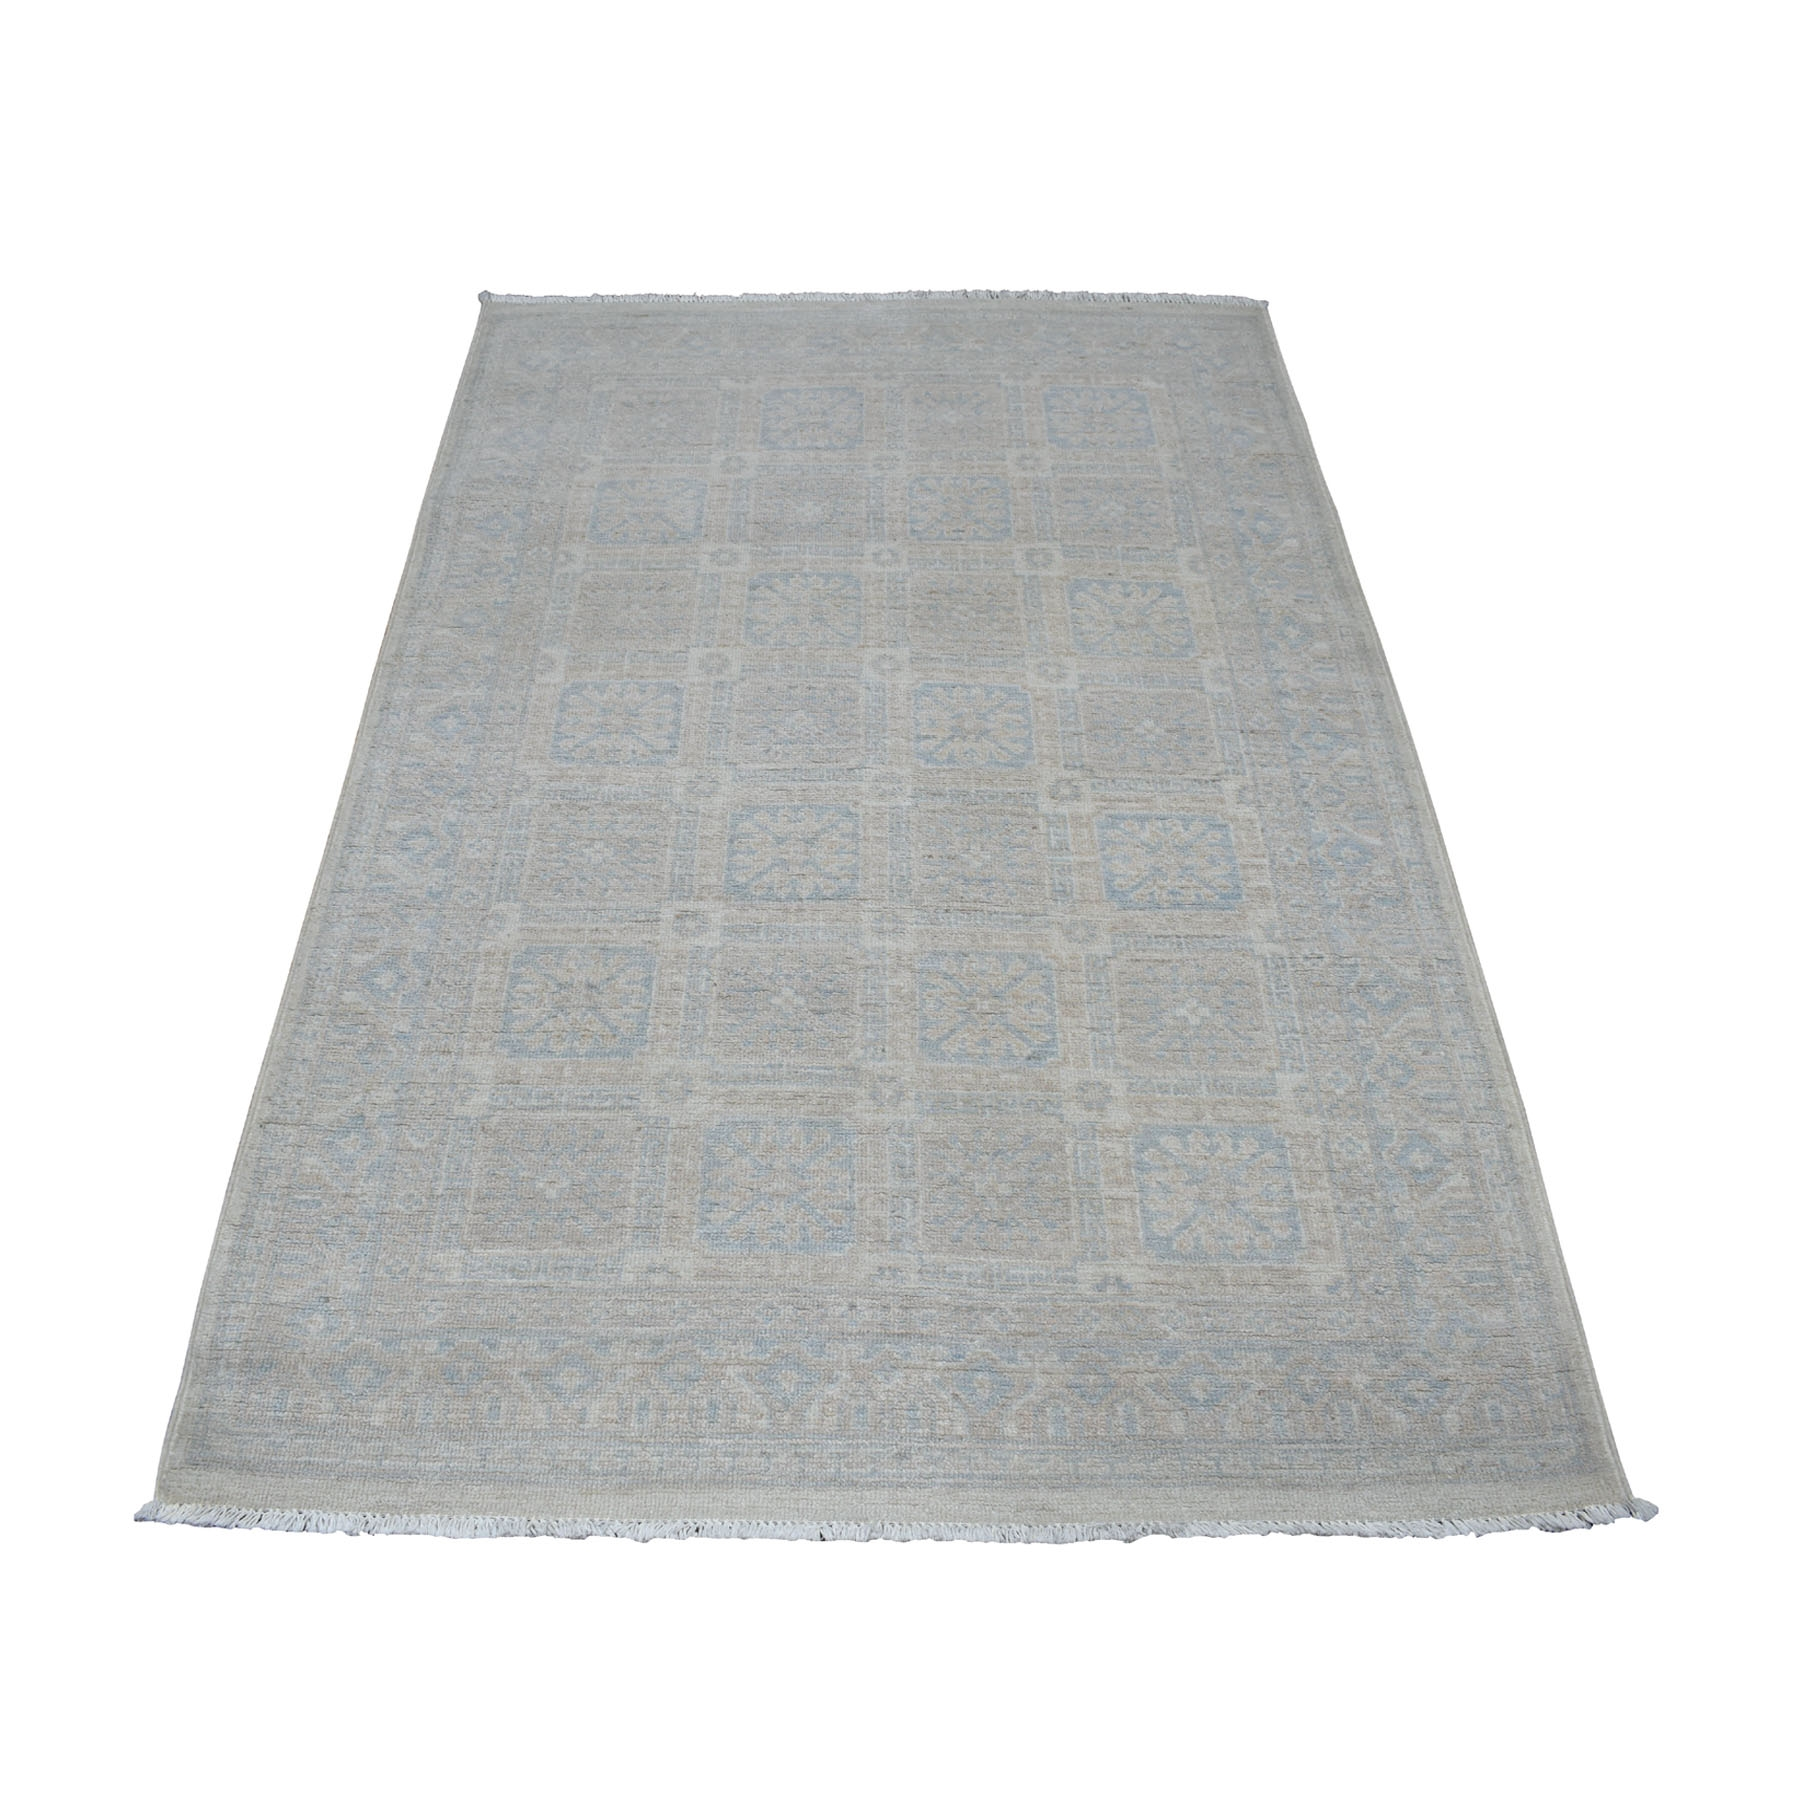 "4'X6'2"" Samarkand With Khotan Repetitive Rossets Design Hand Knotted Oriental Rug  moaec96e"